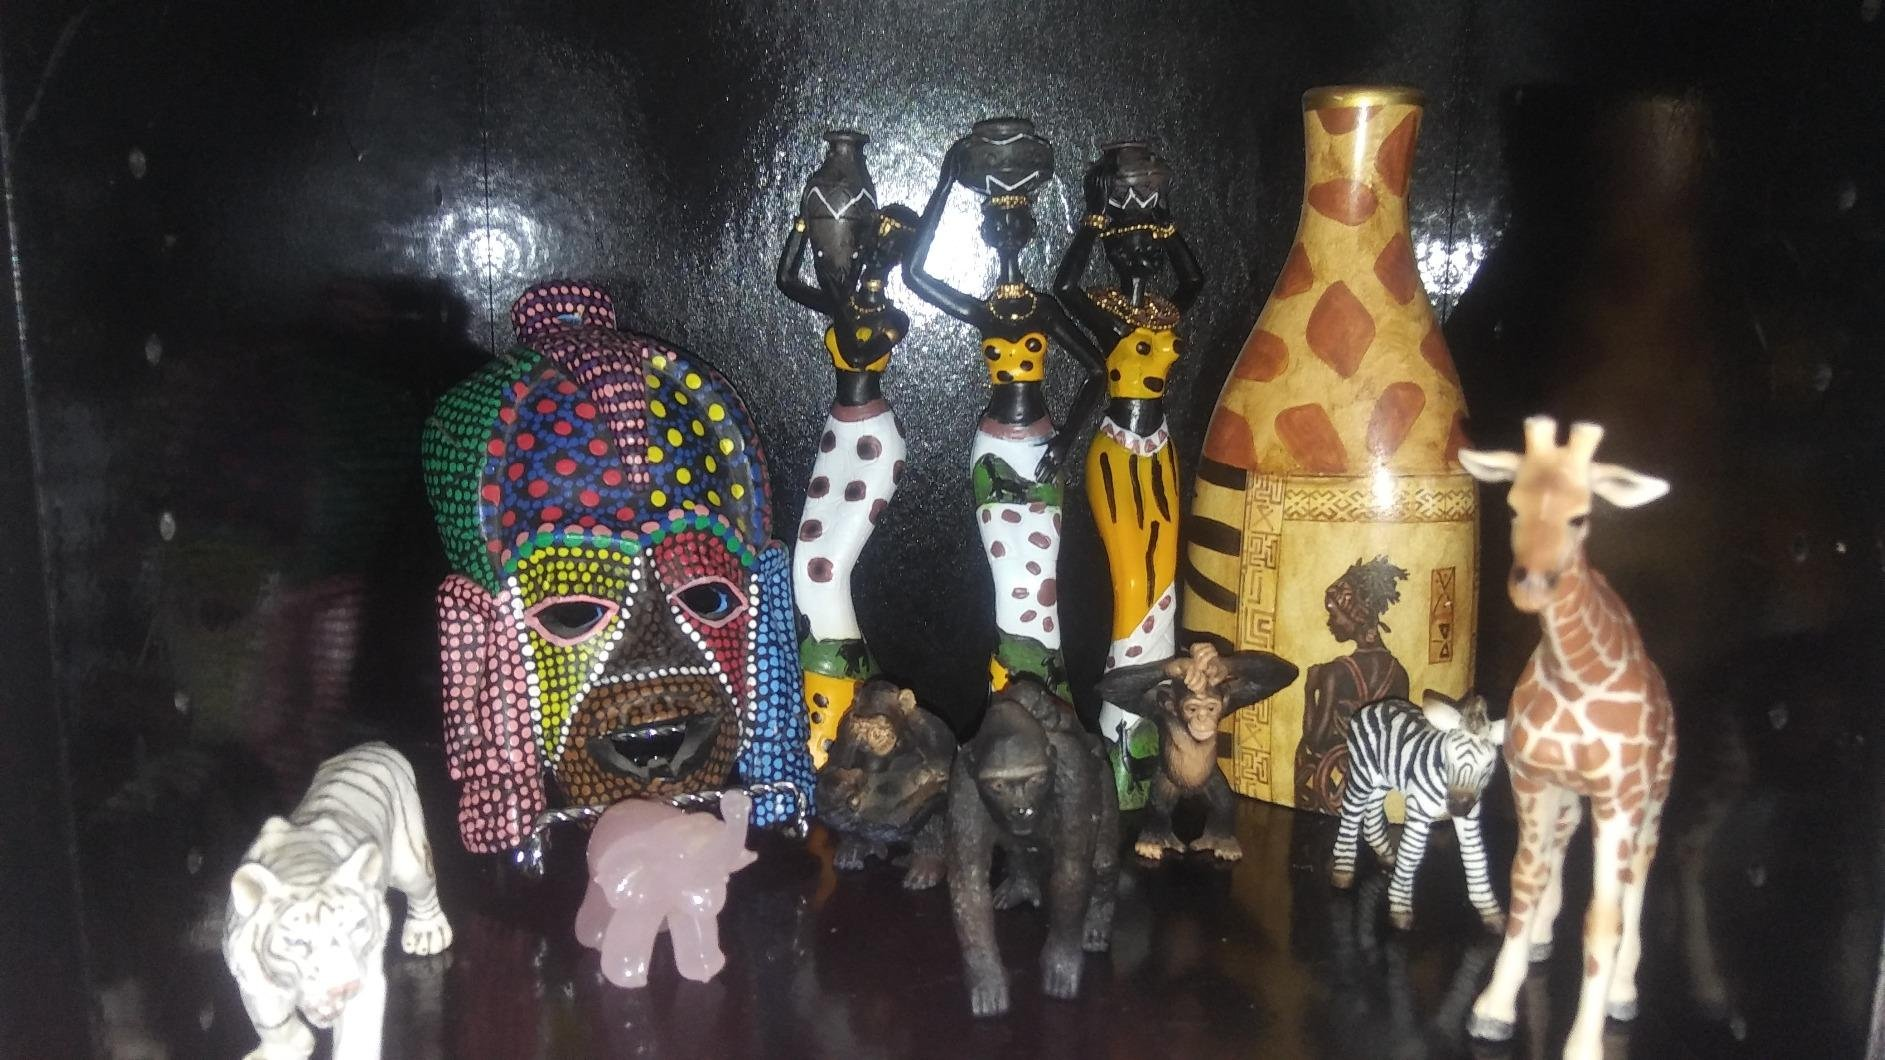 TBW African Tribal Women Collectible Figurines for Mother's Gifts,Green,Pack of 3 by TBW (Image #8)